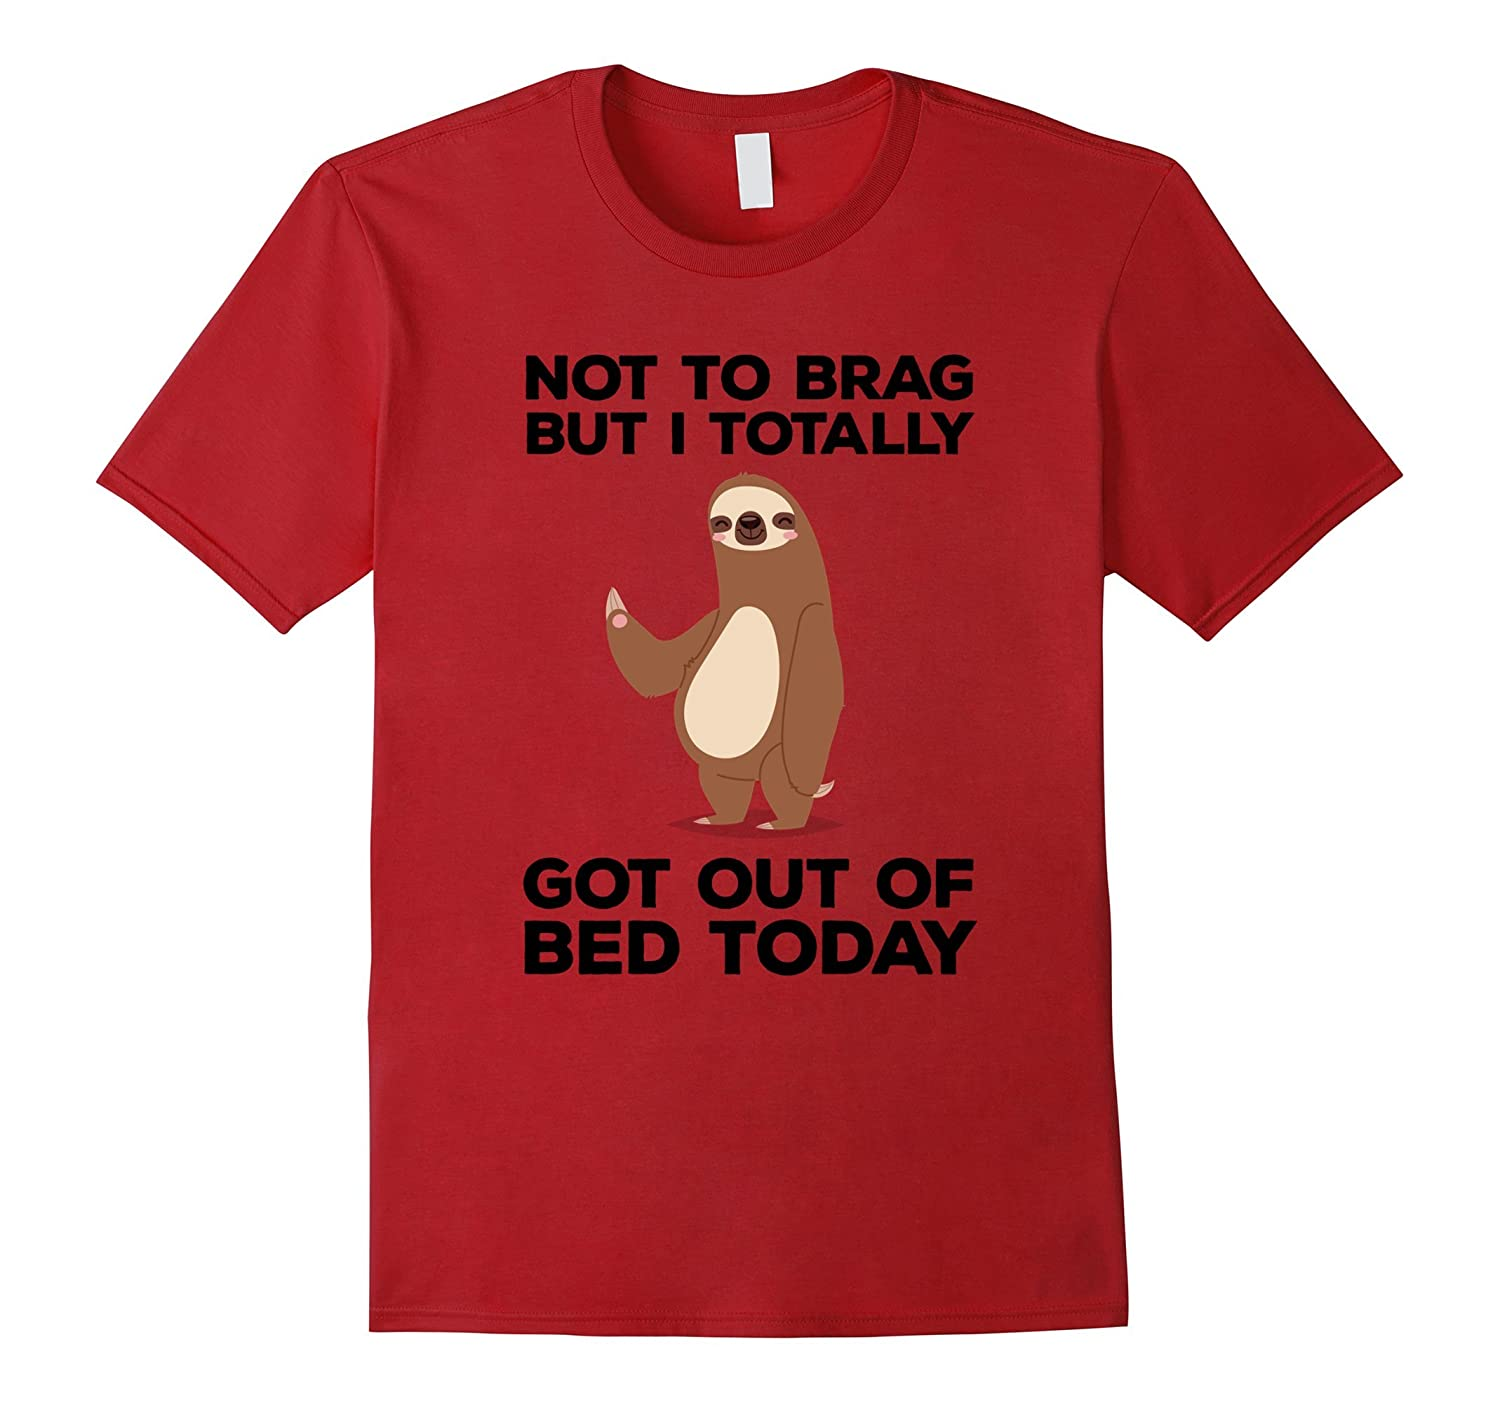 fdd5dfda Funny Sloth T-shirt – Got Out Of Bed Today-CL – Colamaga